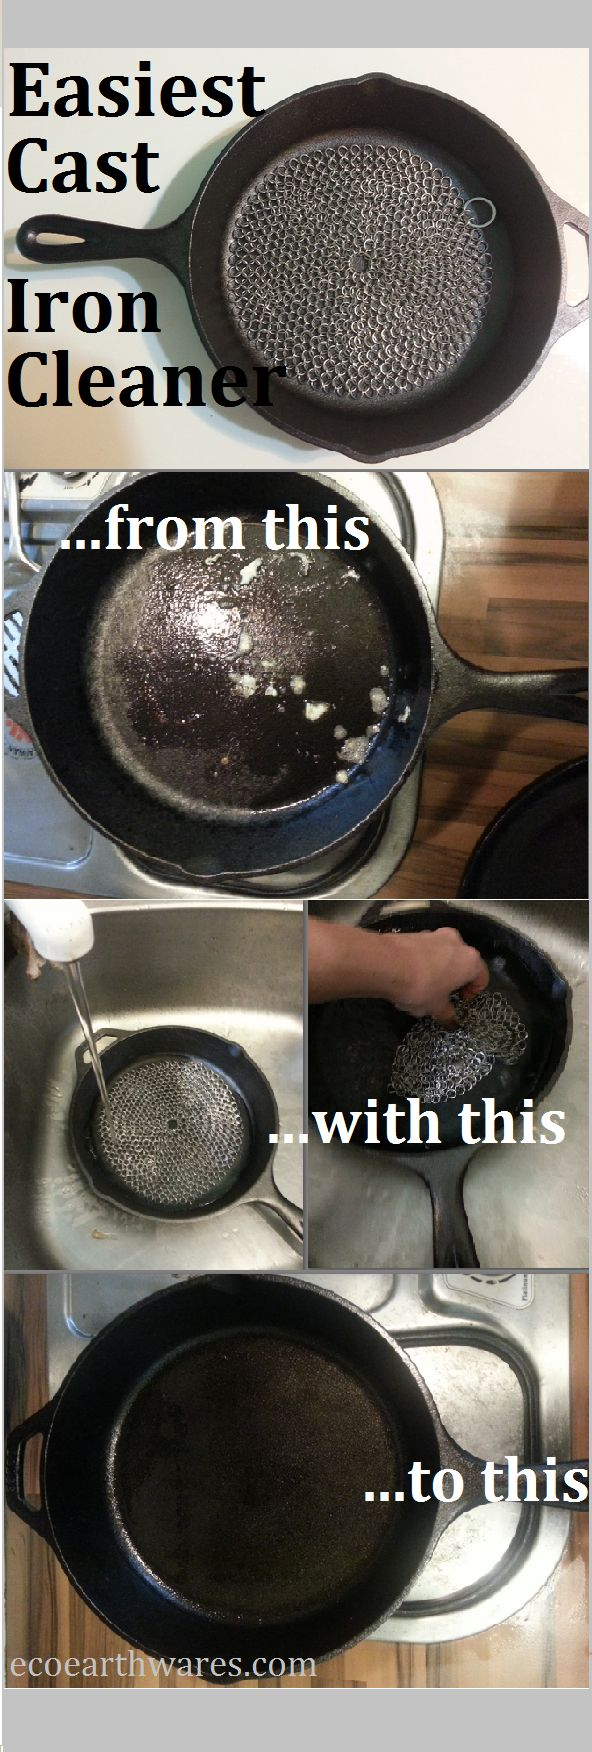 Have you been looking for an easy, germ-free, restorative, eco-friendly cast iron cleaning option? ScrubBrilliant Chainmail Pan Cleaner is awesome on pans from dutch ovens to cookie sheets, grills, griddles and glasswares. Get yours today on Amazon!